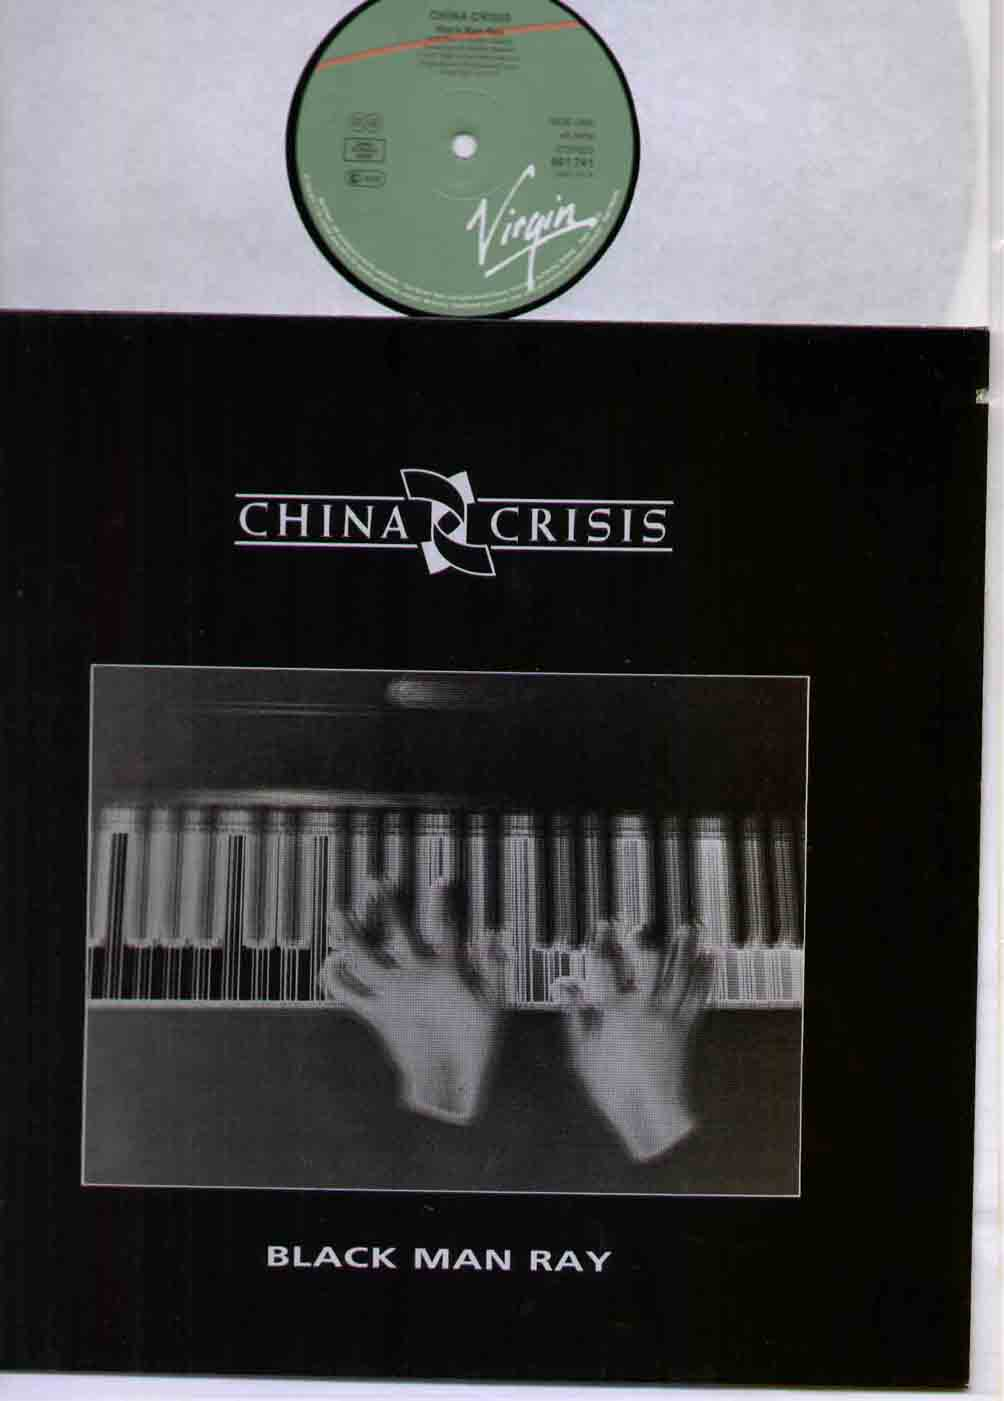 CHINA CRISIS - Black Man Ray EP